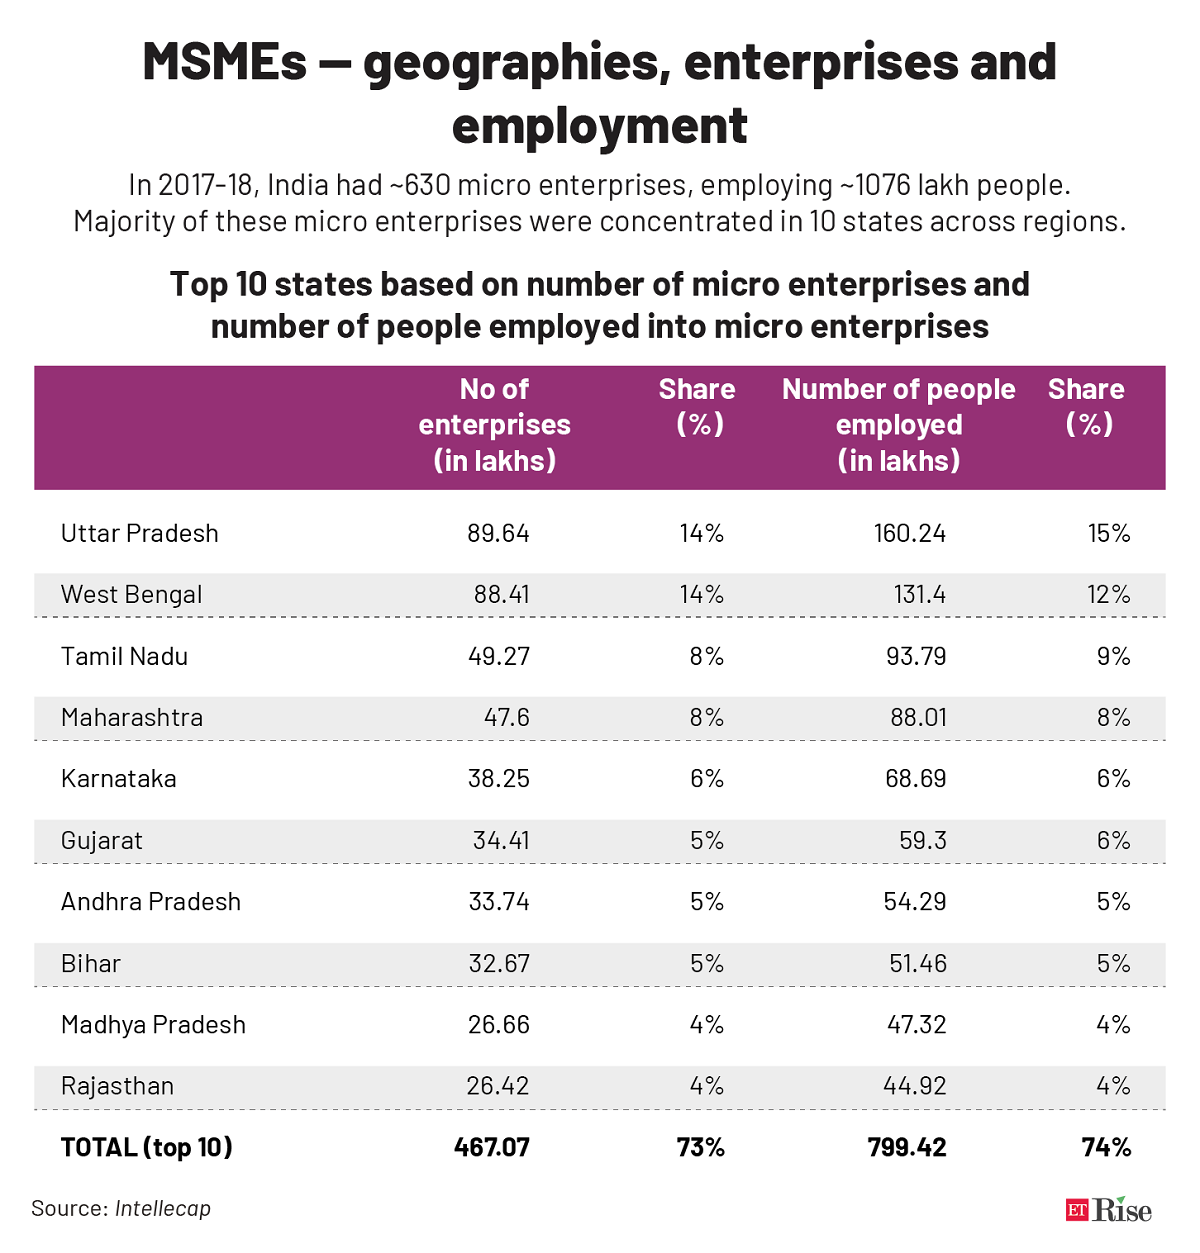 MSMEs — geographies, enterprises and employment@2x